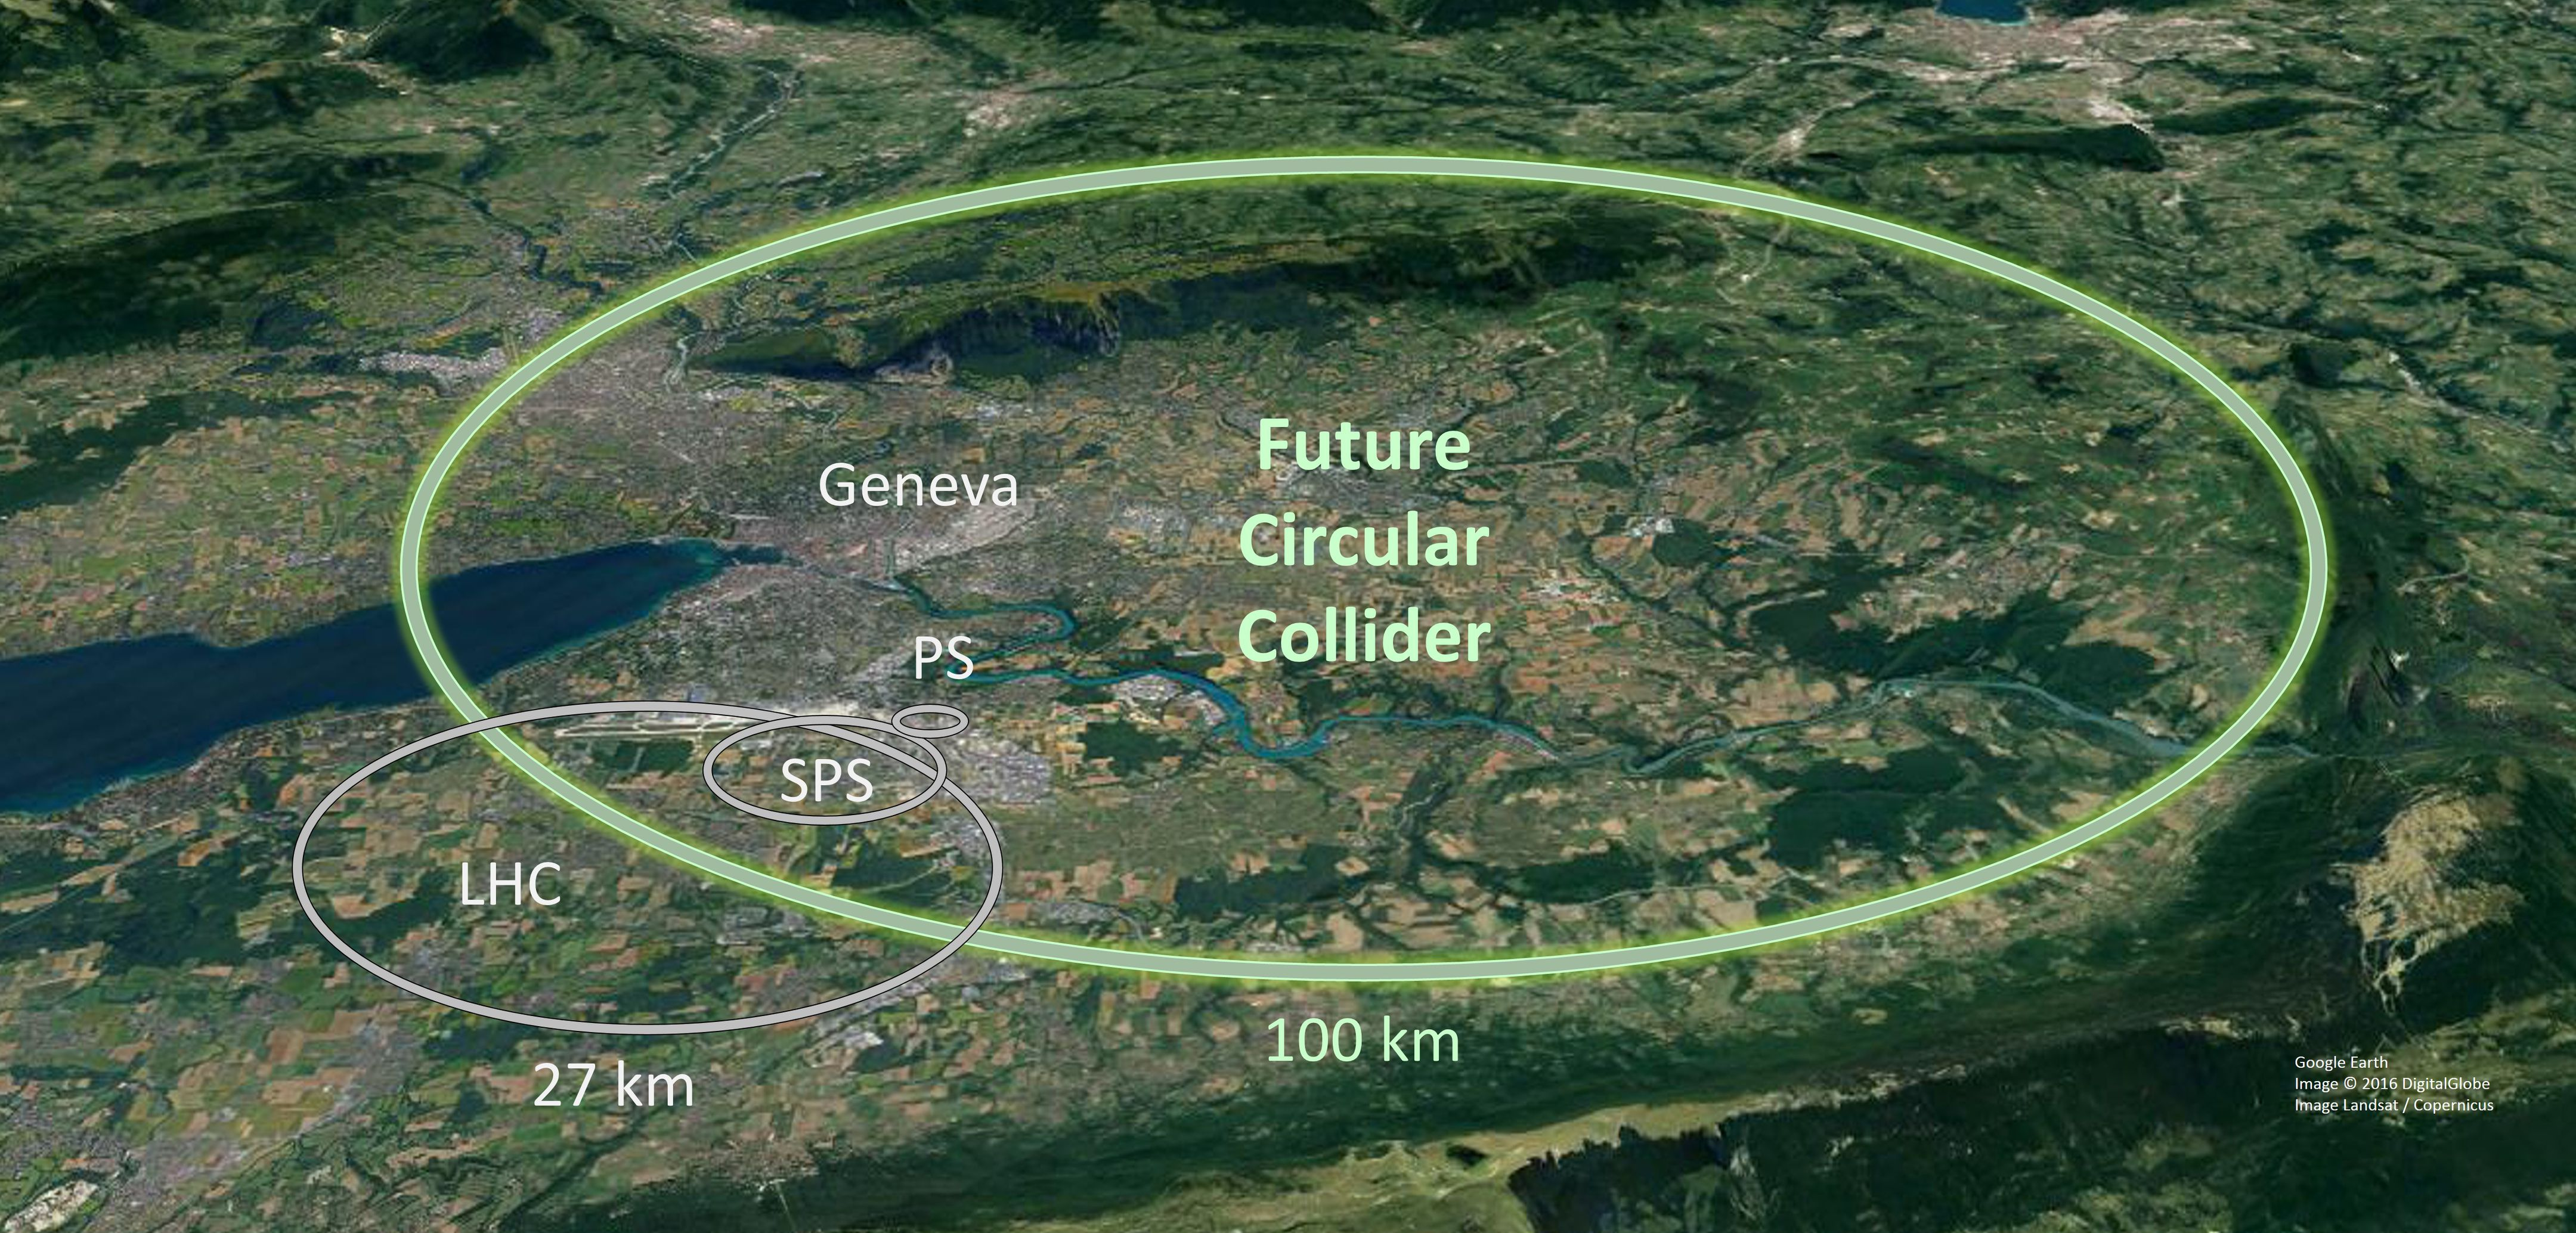 The $22 billion gamble: why some physicists aren't excited about building a bigger particle collider